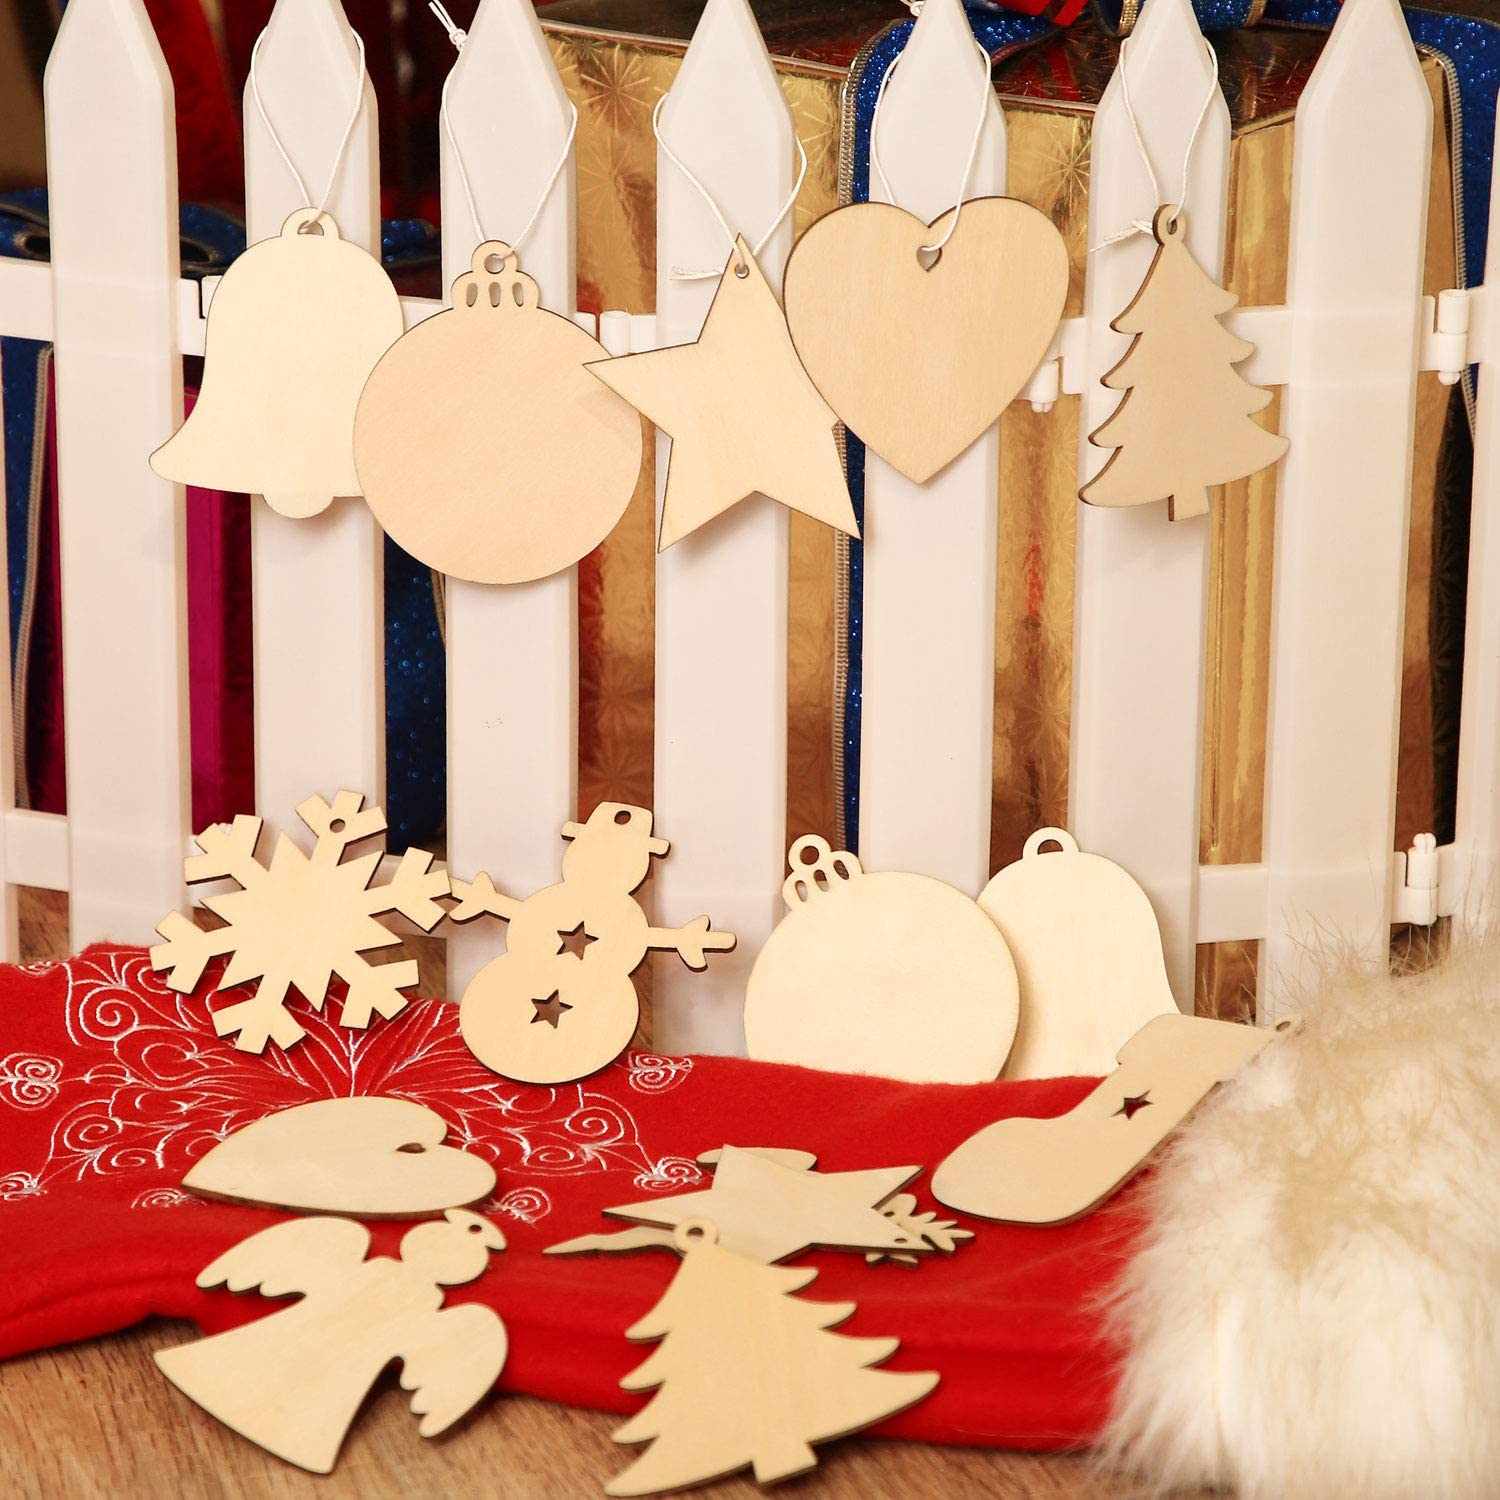 Favide 120 Pieces Wooden Christmas Cutouts Wood Slice Xmas Embellishments Hanging Ornaments with Ropes for Christmas Decoration 120 Festival DIY Wood Crafts Wedding